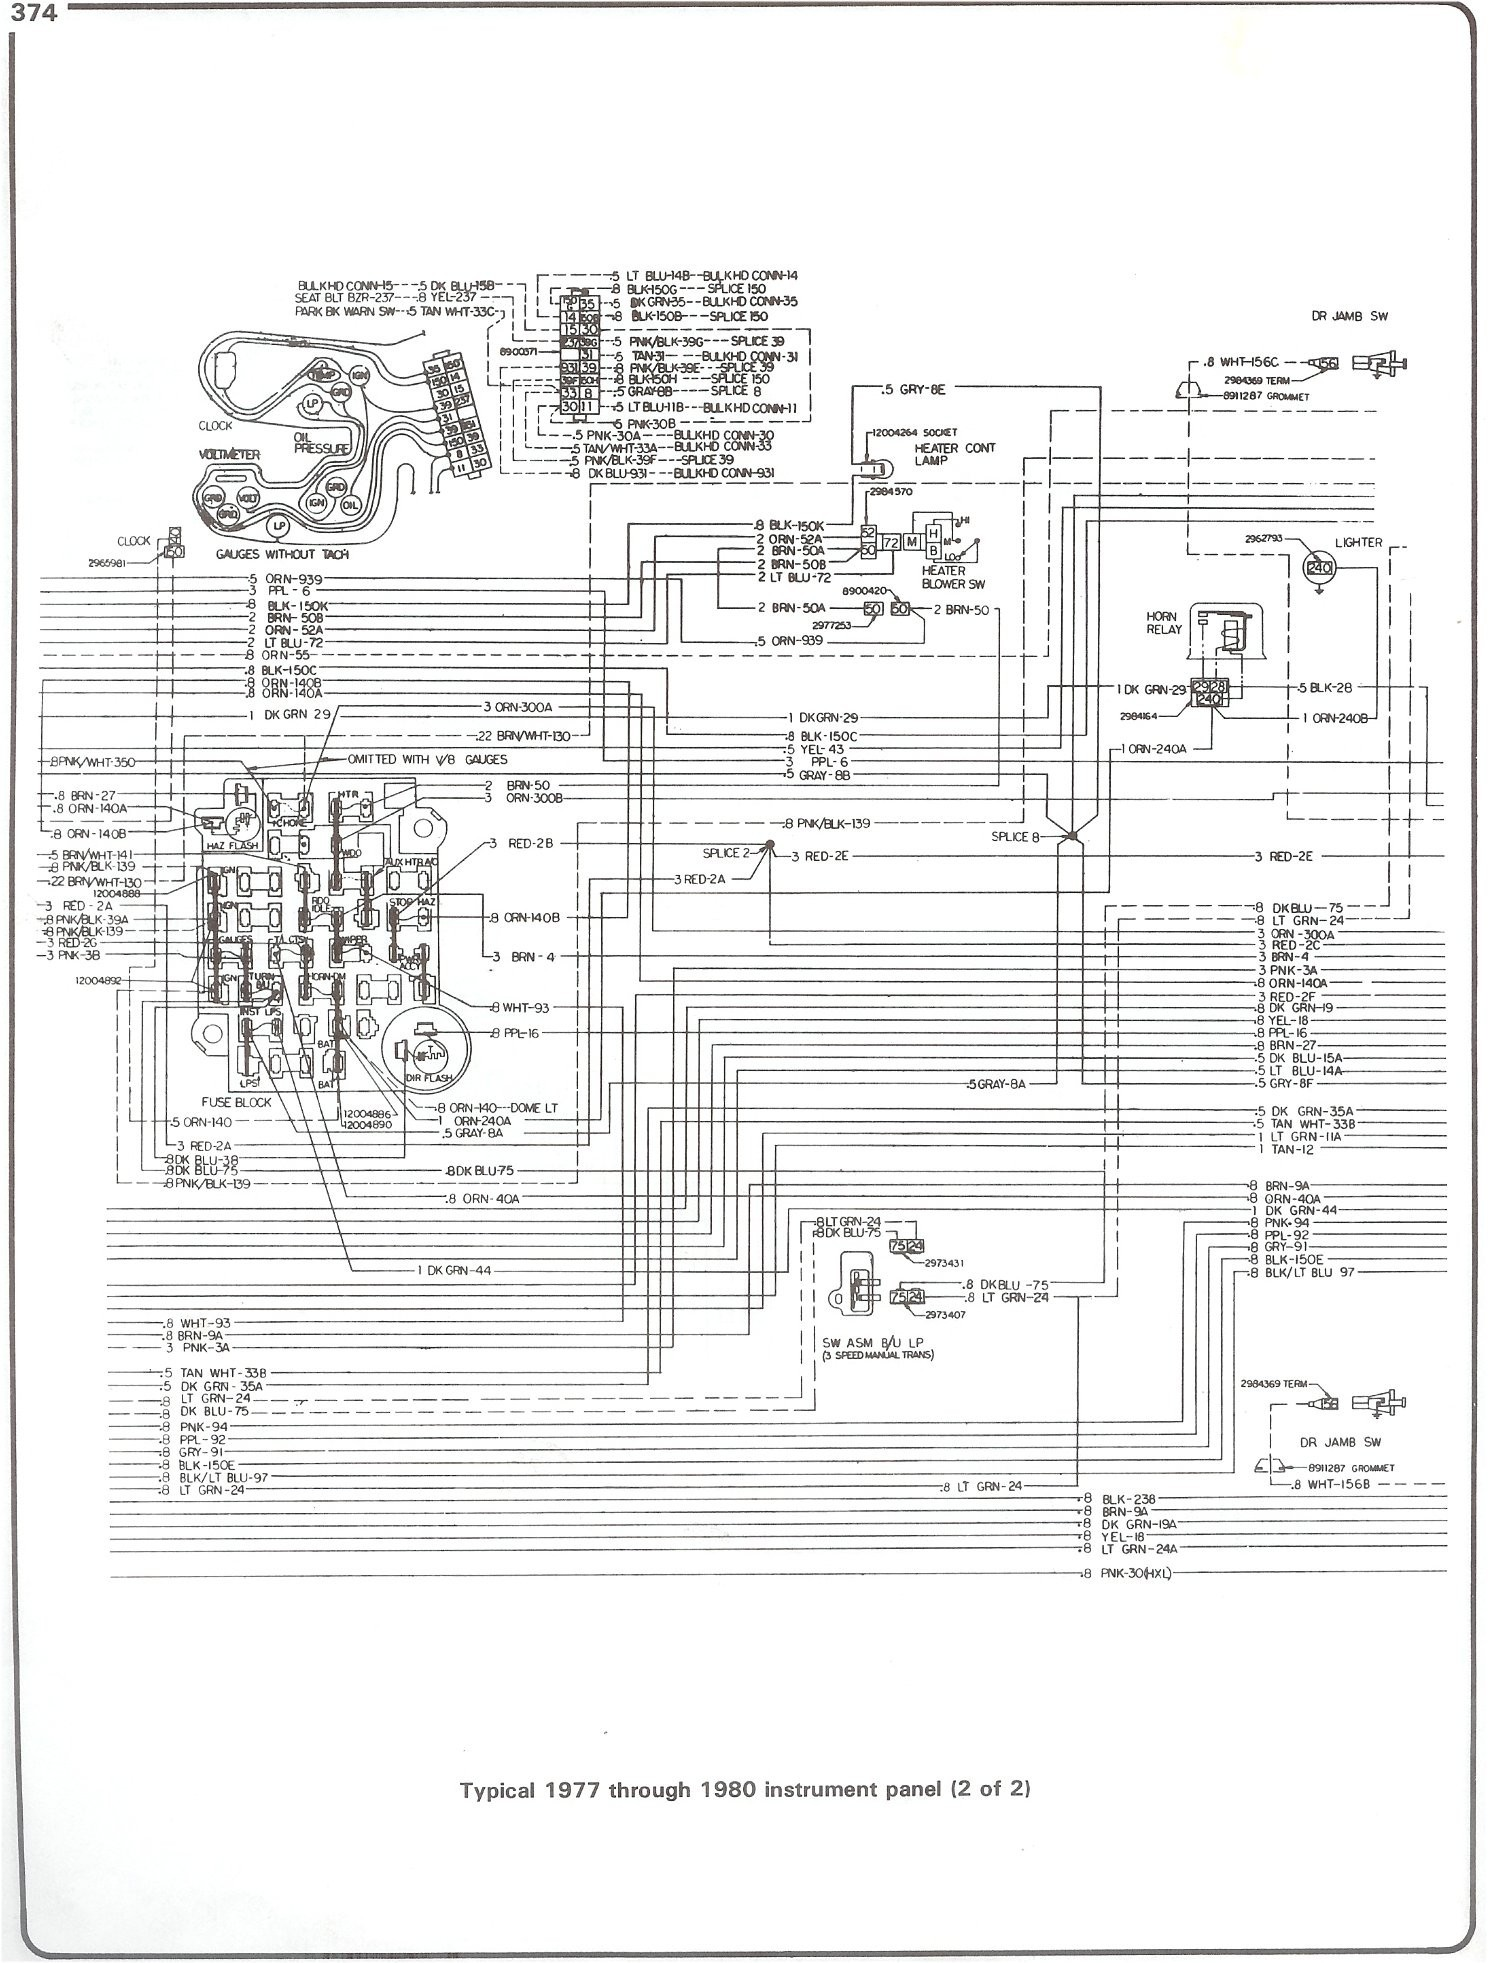 1977 chevy truck alternator wiring diagram easy to read wiring rh mywiringdiagram today Alternator Schematic Diagram Chevy Alternator Wiring Diagram